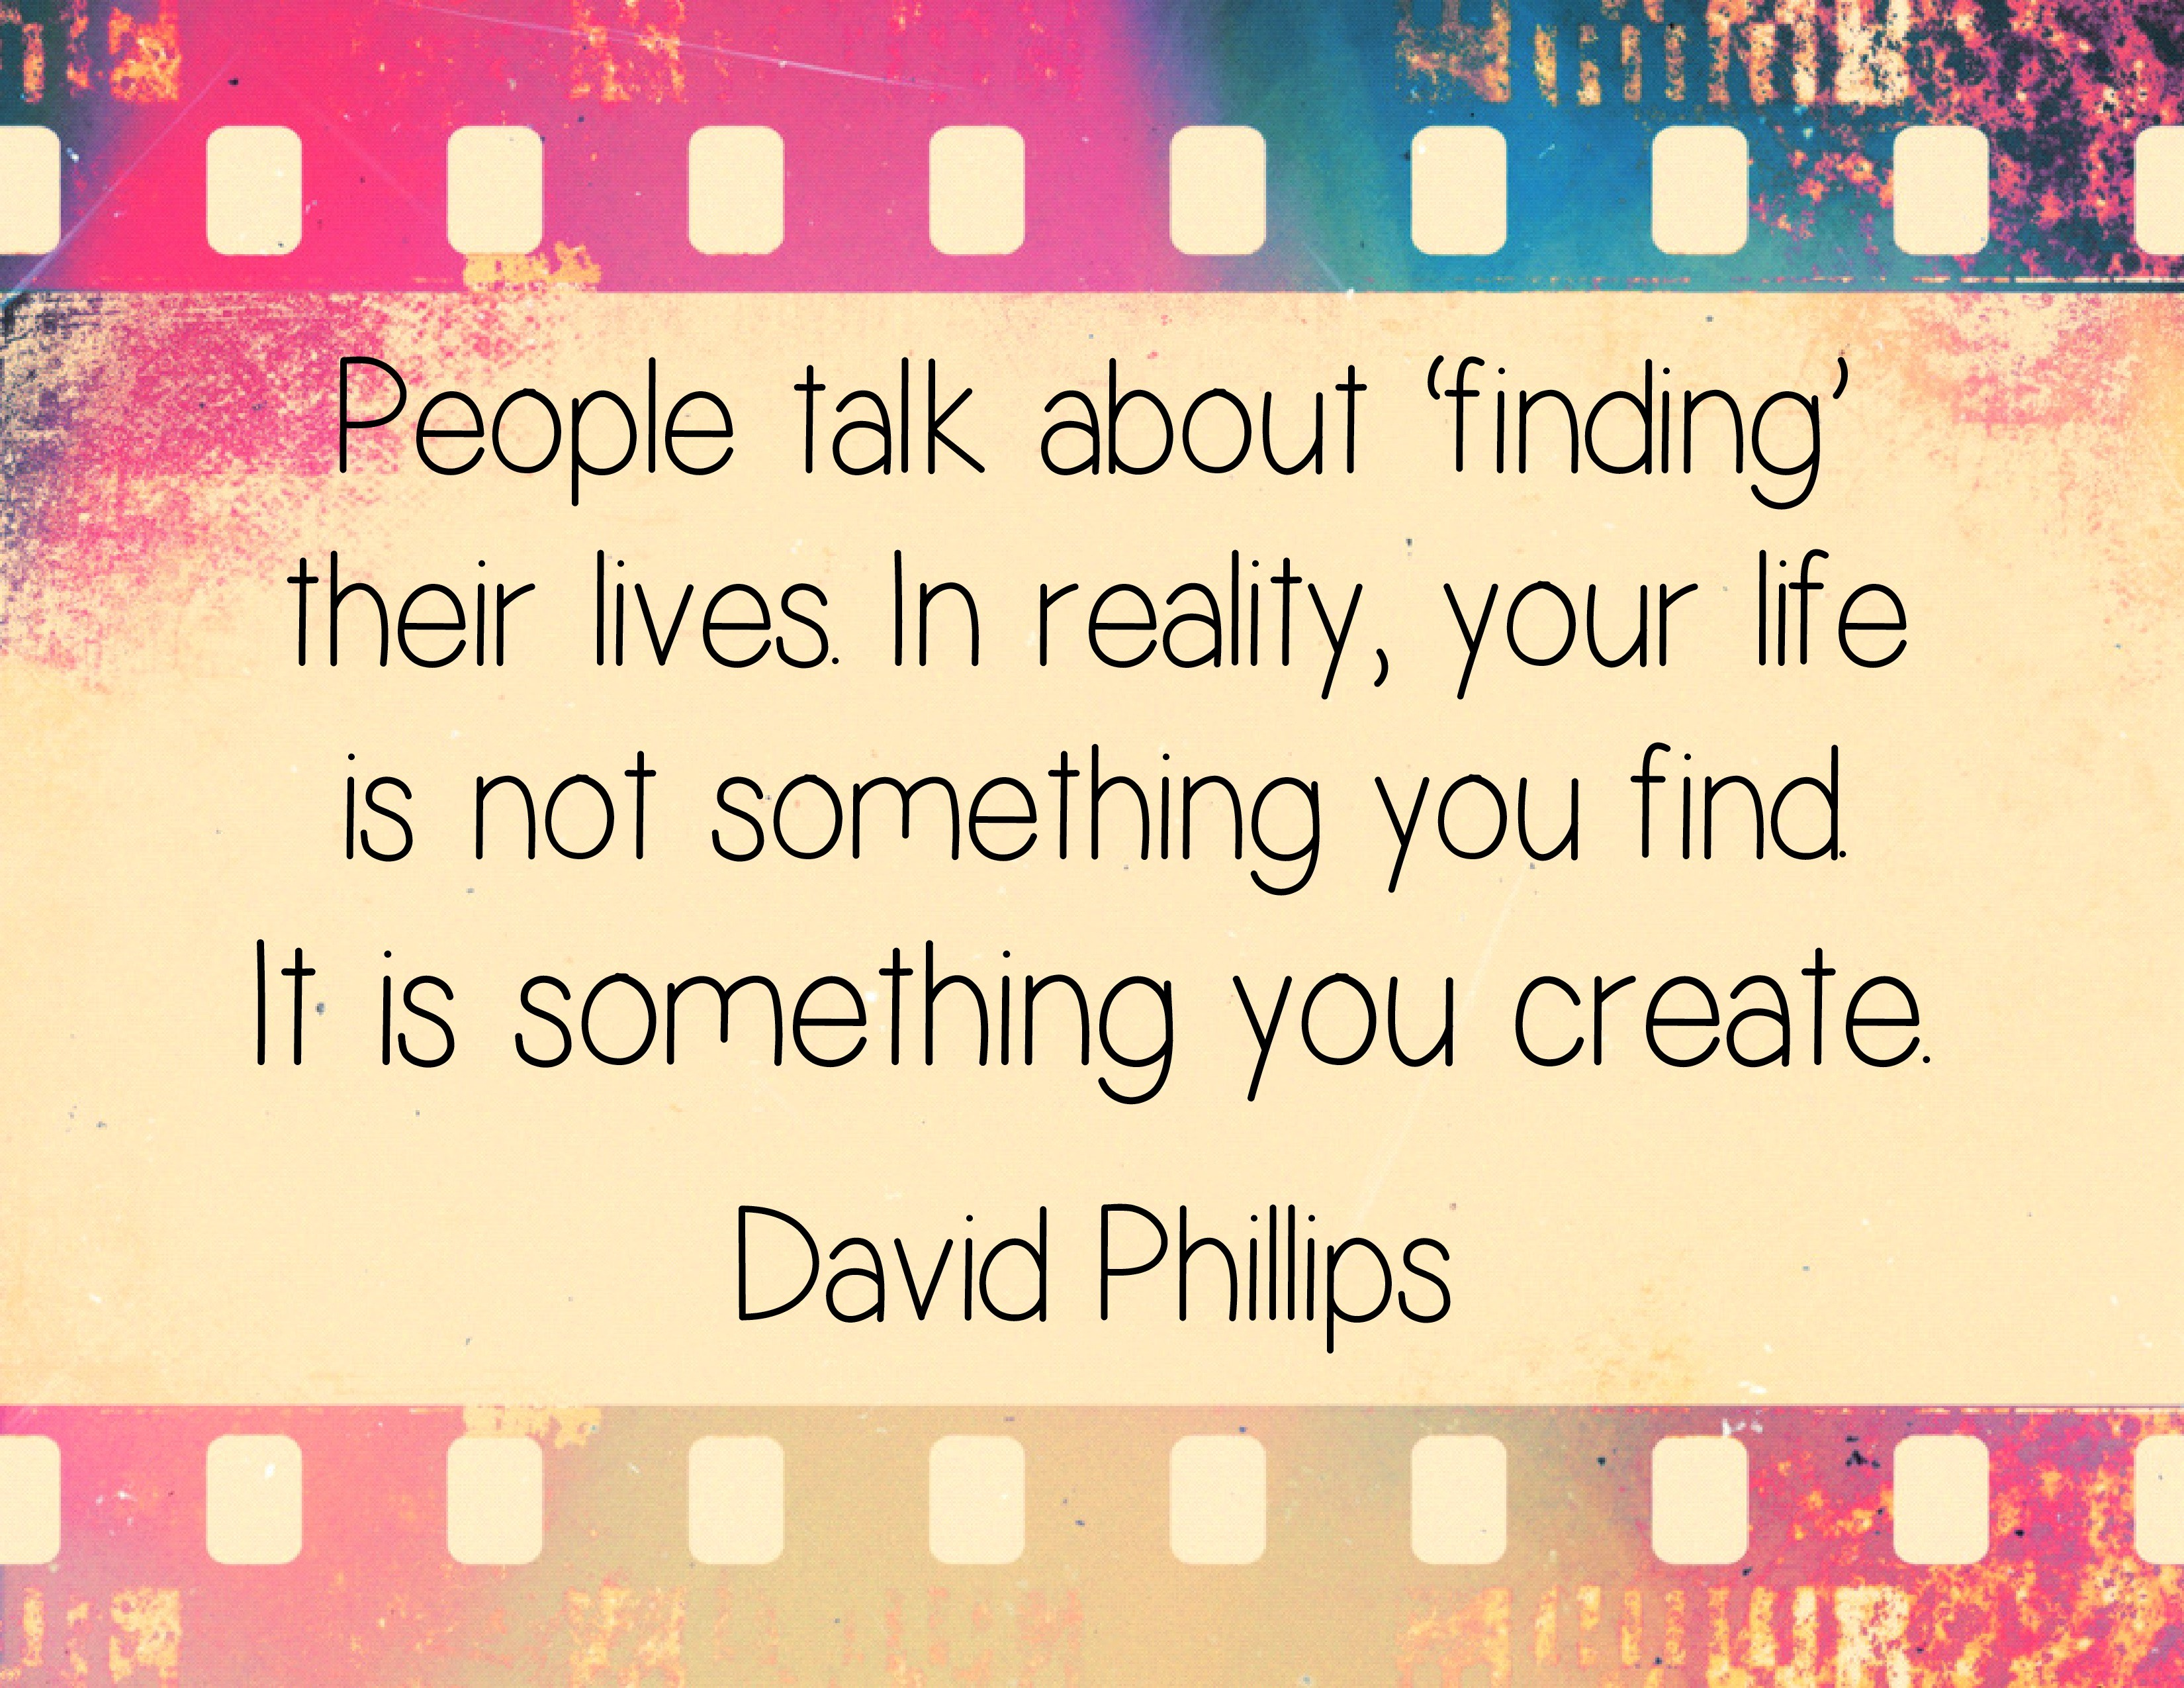 People talk about finding their lives